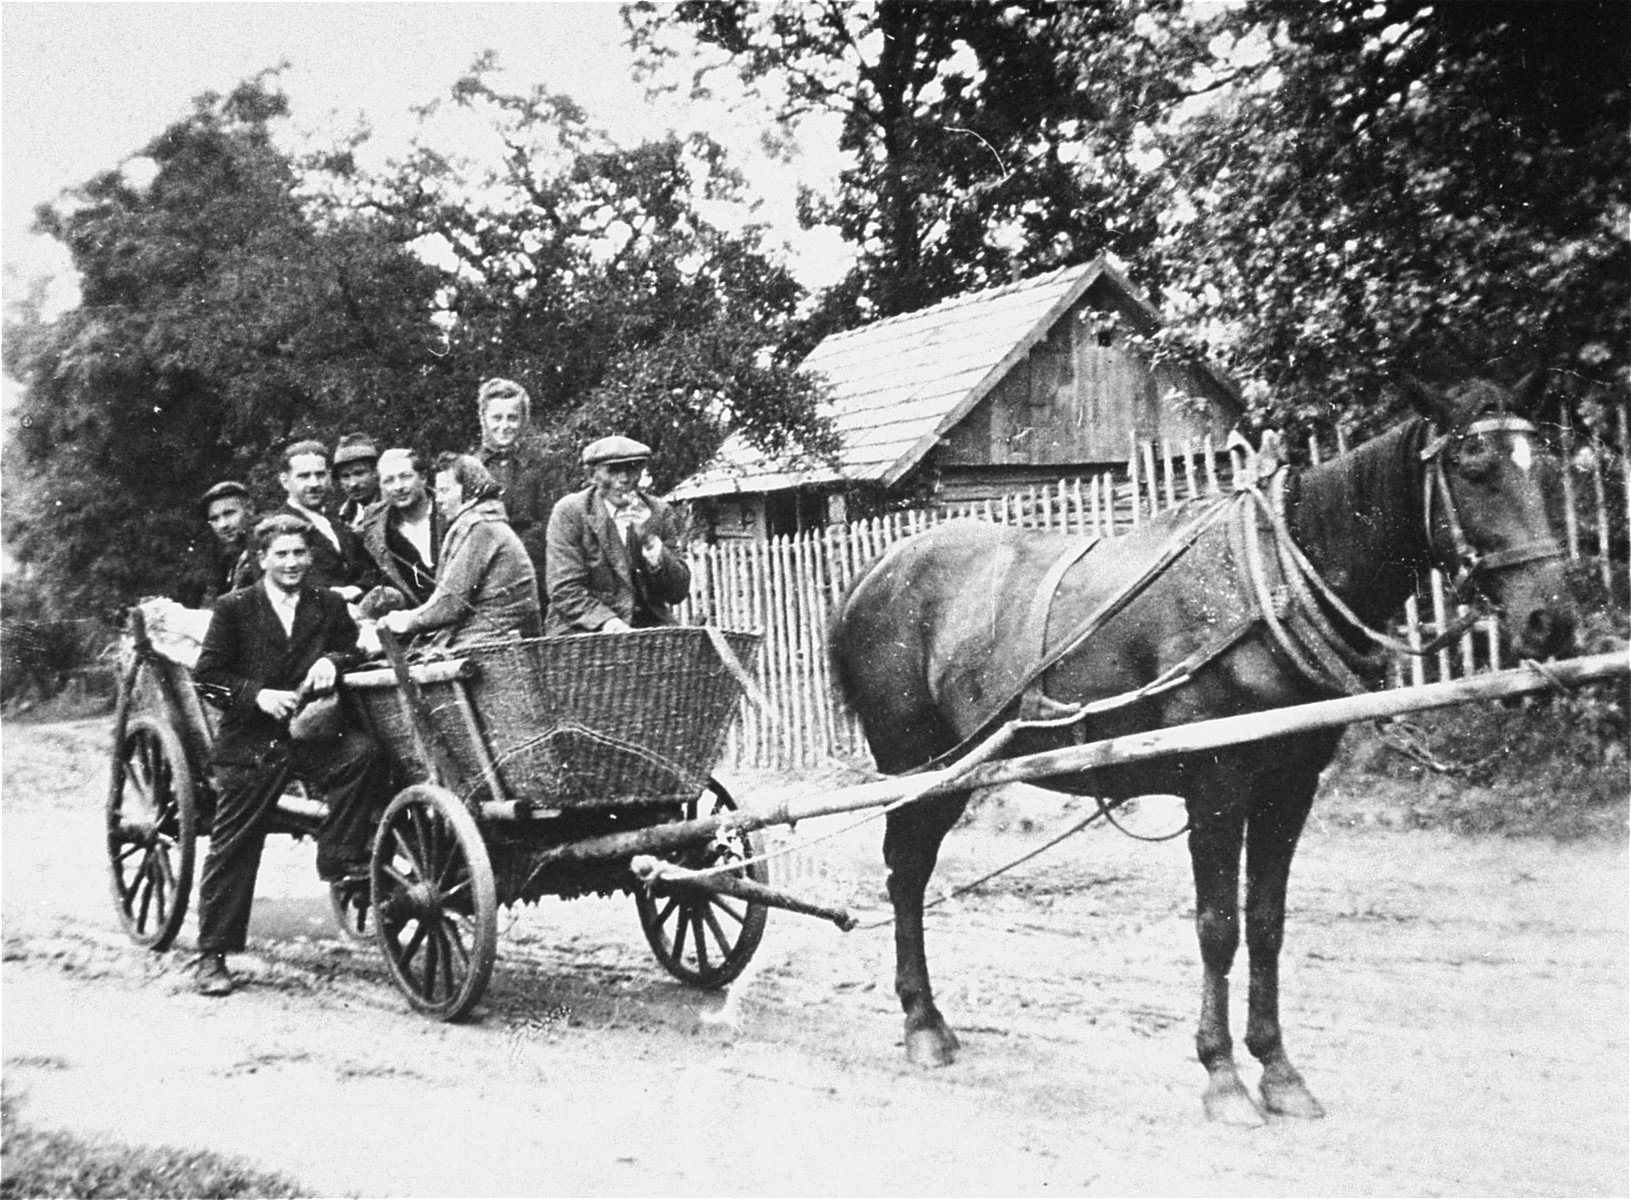 Jews traveling by horse-drawn wagon in Kolbuszowa after the war.  Among those pictured is Manius Notowicz (standing next to the wagon).